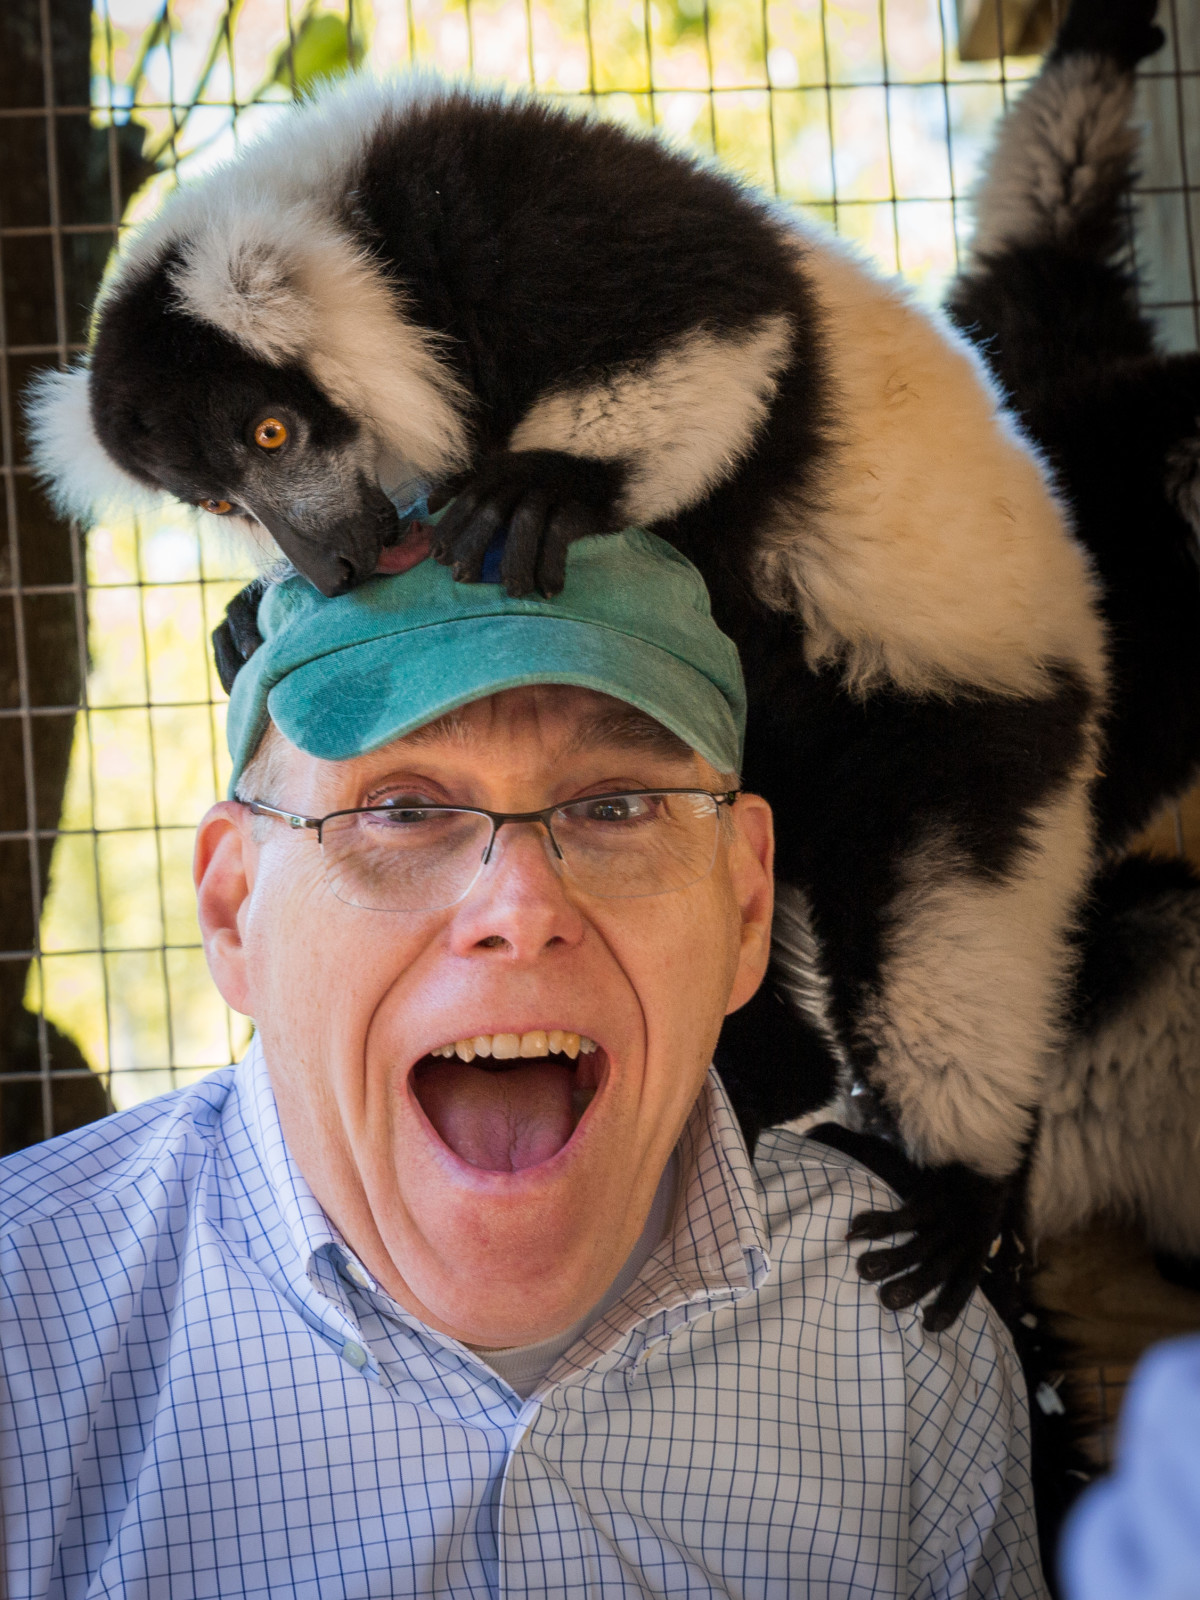 Man with a lemur on his head